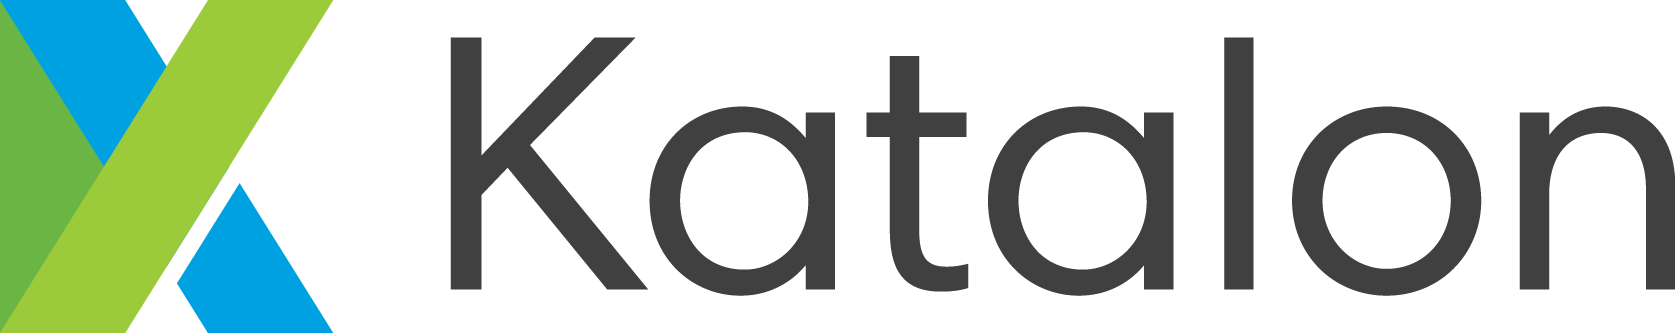 Katalon - all in one test automation solution